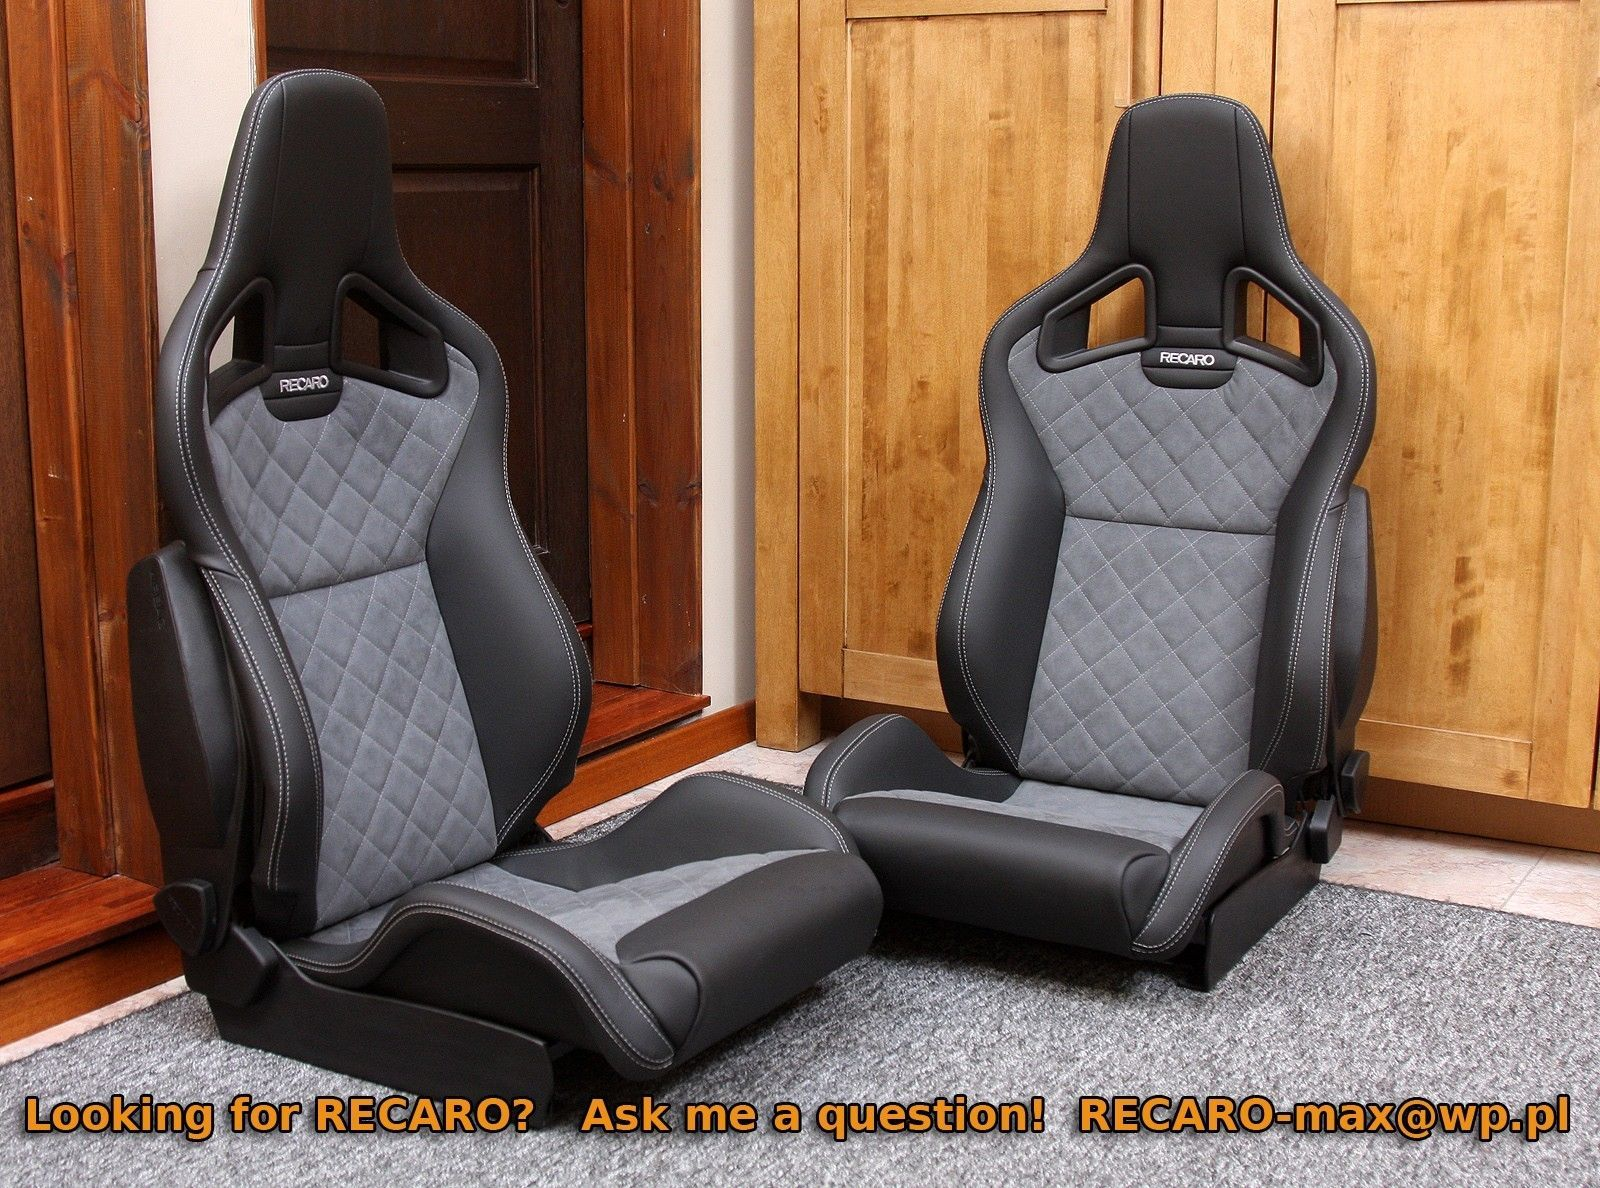 details about recaro sportster cs airbag many options bmw sti evo porsche mustang r8 etc. Black Bedroom Furniture Sets. Home Design Ideas